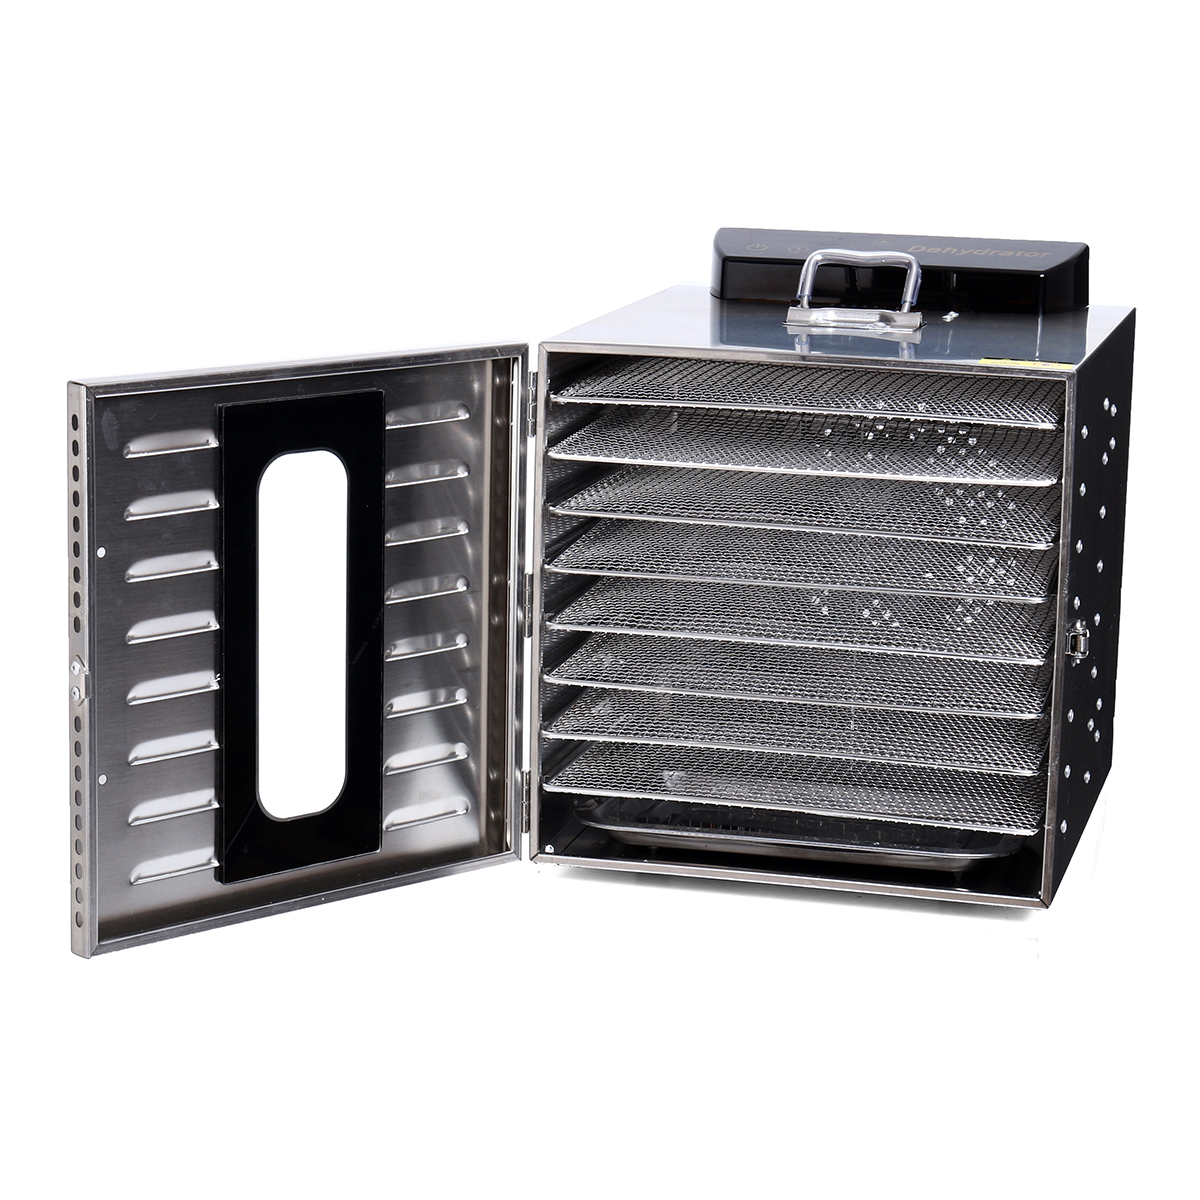 8 Tray Food Drying Machine Jerky Stainless Steel Fruit Dryer Maker Commercial Dehumidification